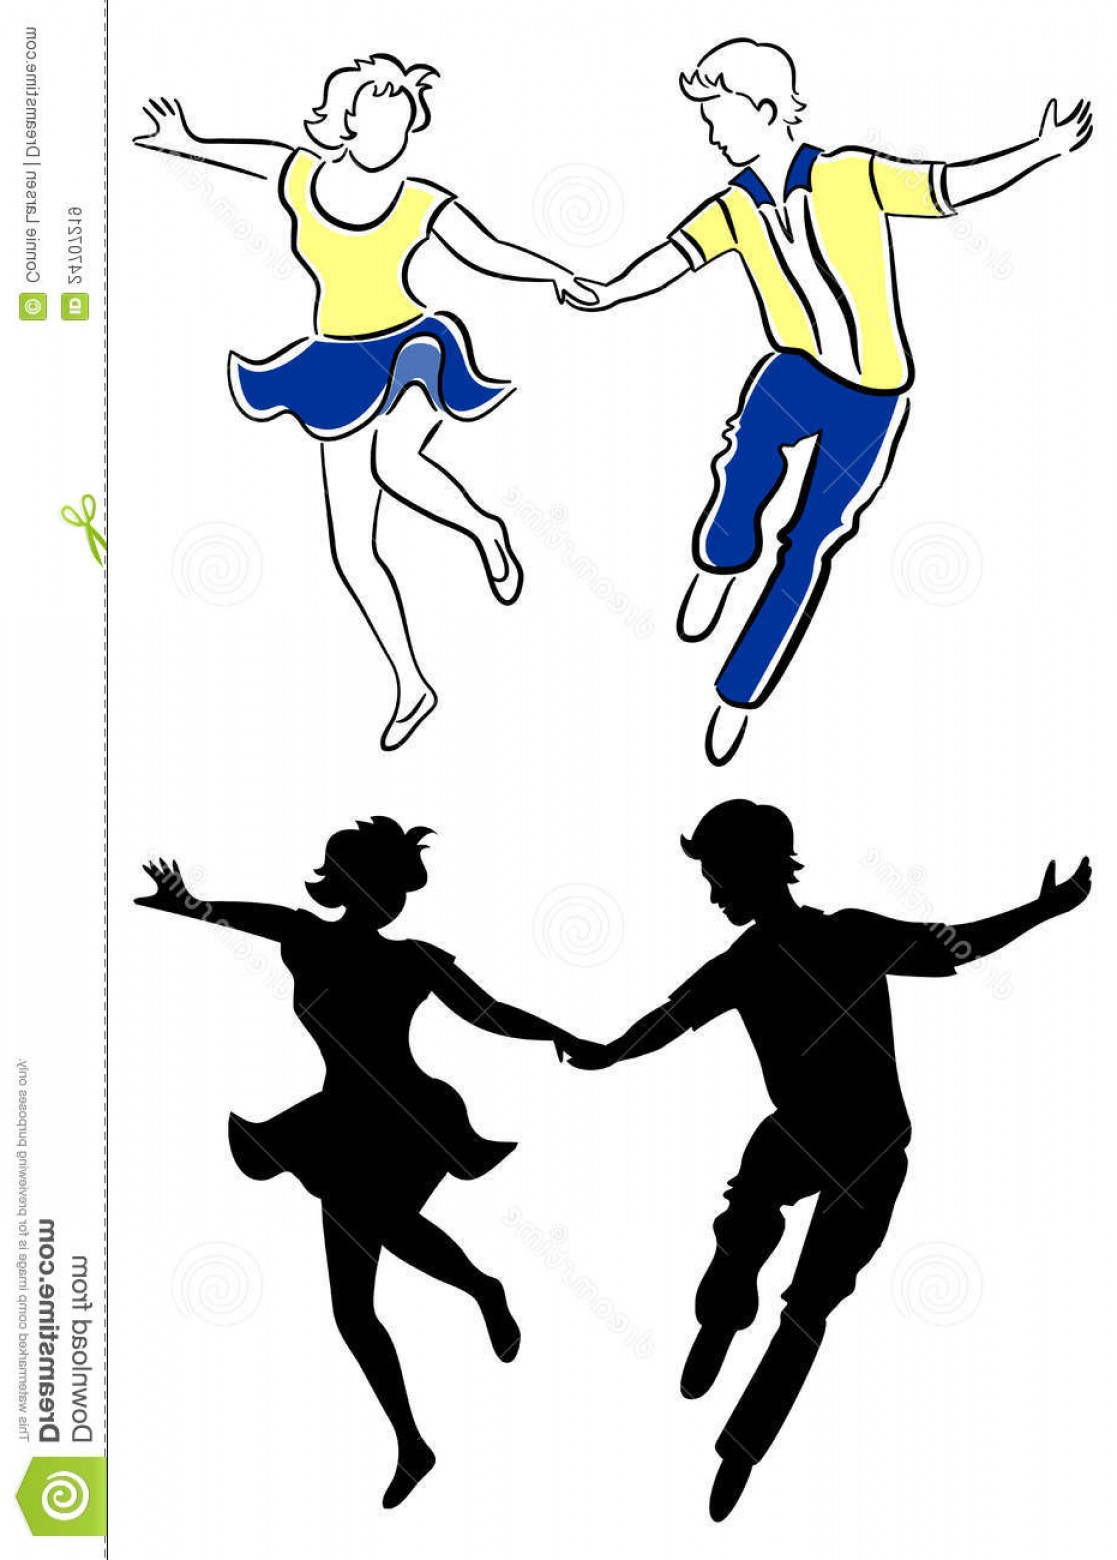 Vector Swing Dancers: Royalty Free Stock Images Swing Dance Couple Eps Image